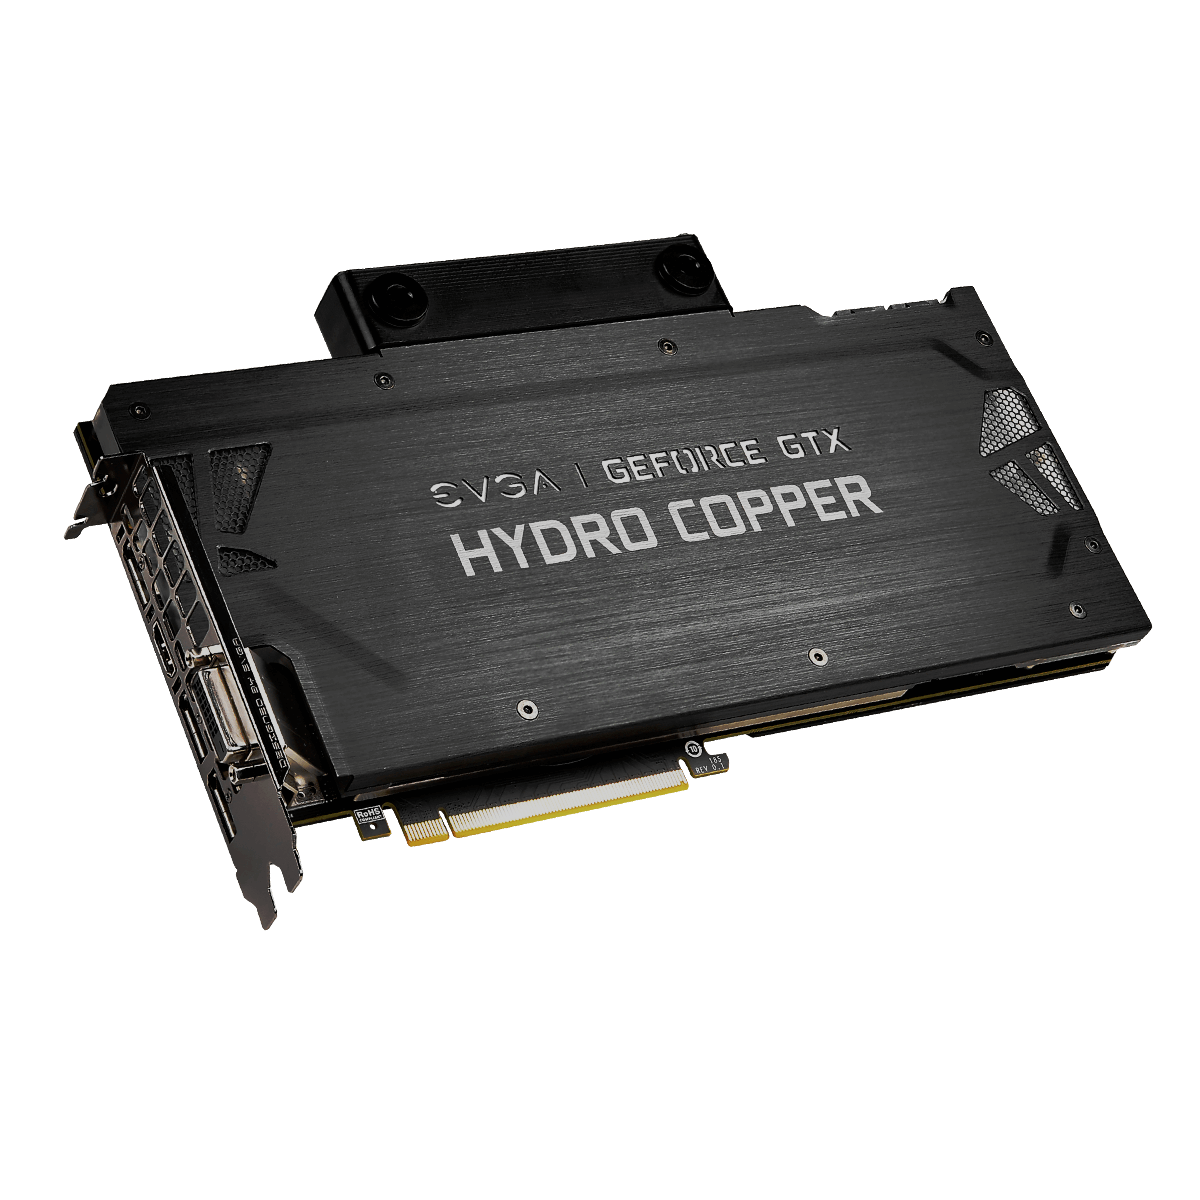 Evga GeForce GTX 1080 Ti FTW3 iCX Hydro Copper GAMING Graphic Card - Core Components by Evga The Chelsea Gamer